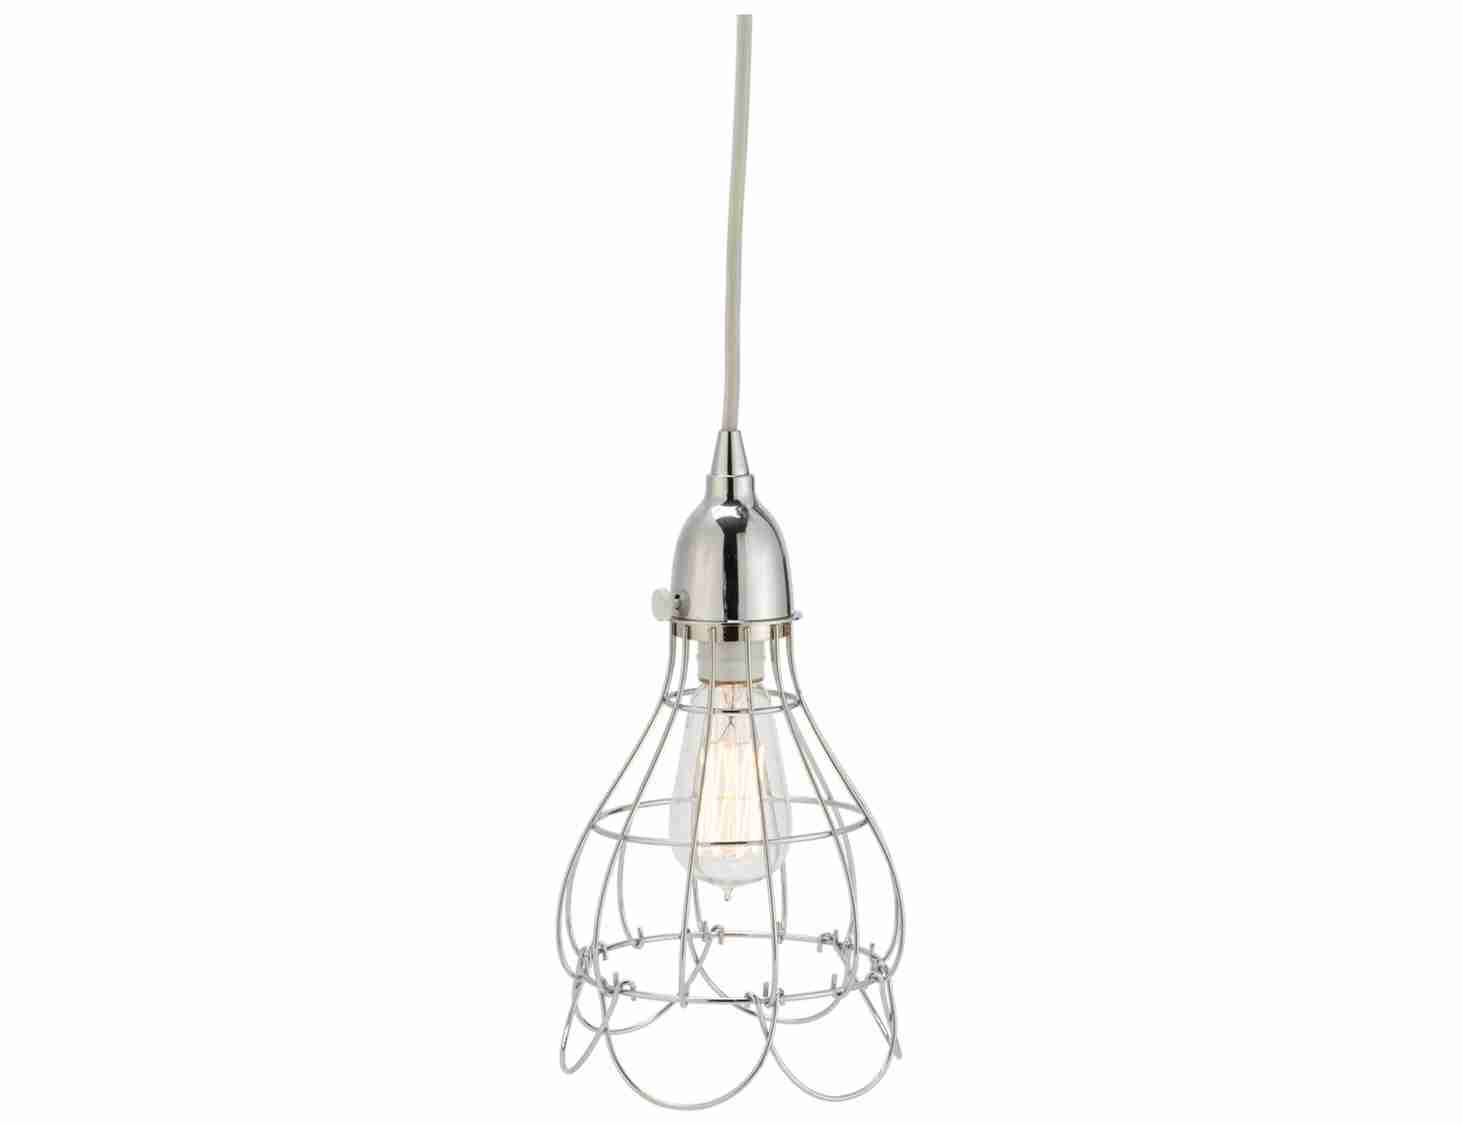 Rustic industrial style simple small hanging lamp for indoor decoration